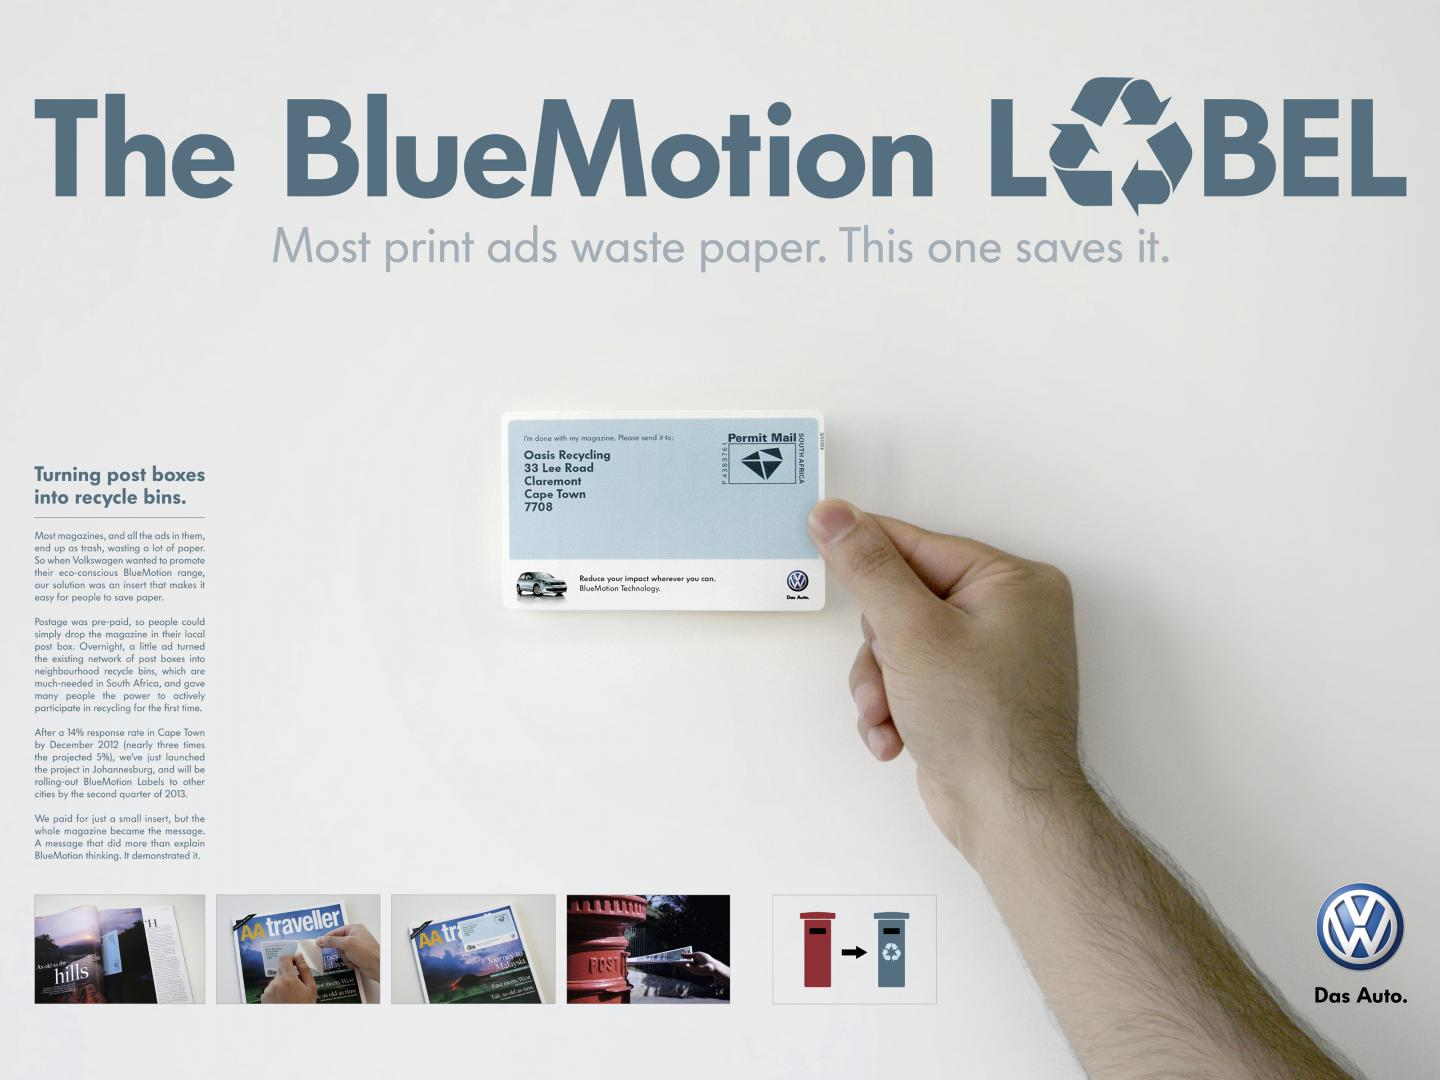 The BlueMotion Label Thumbnail